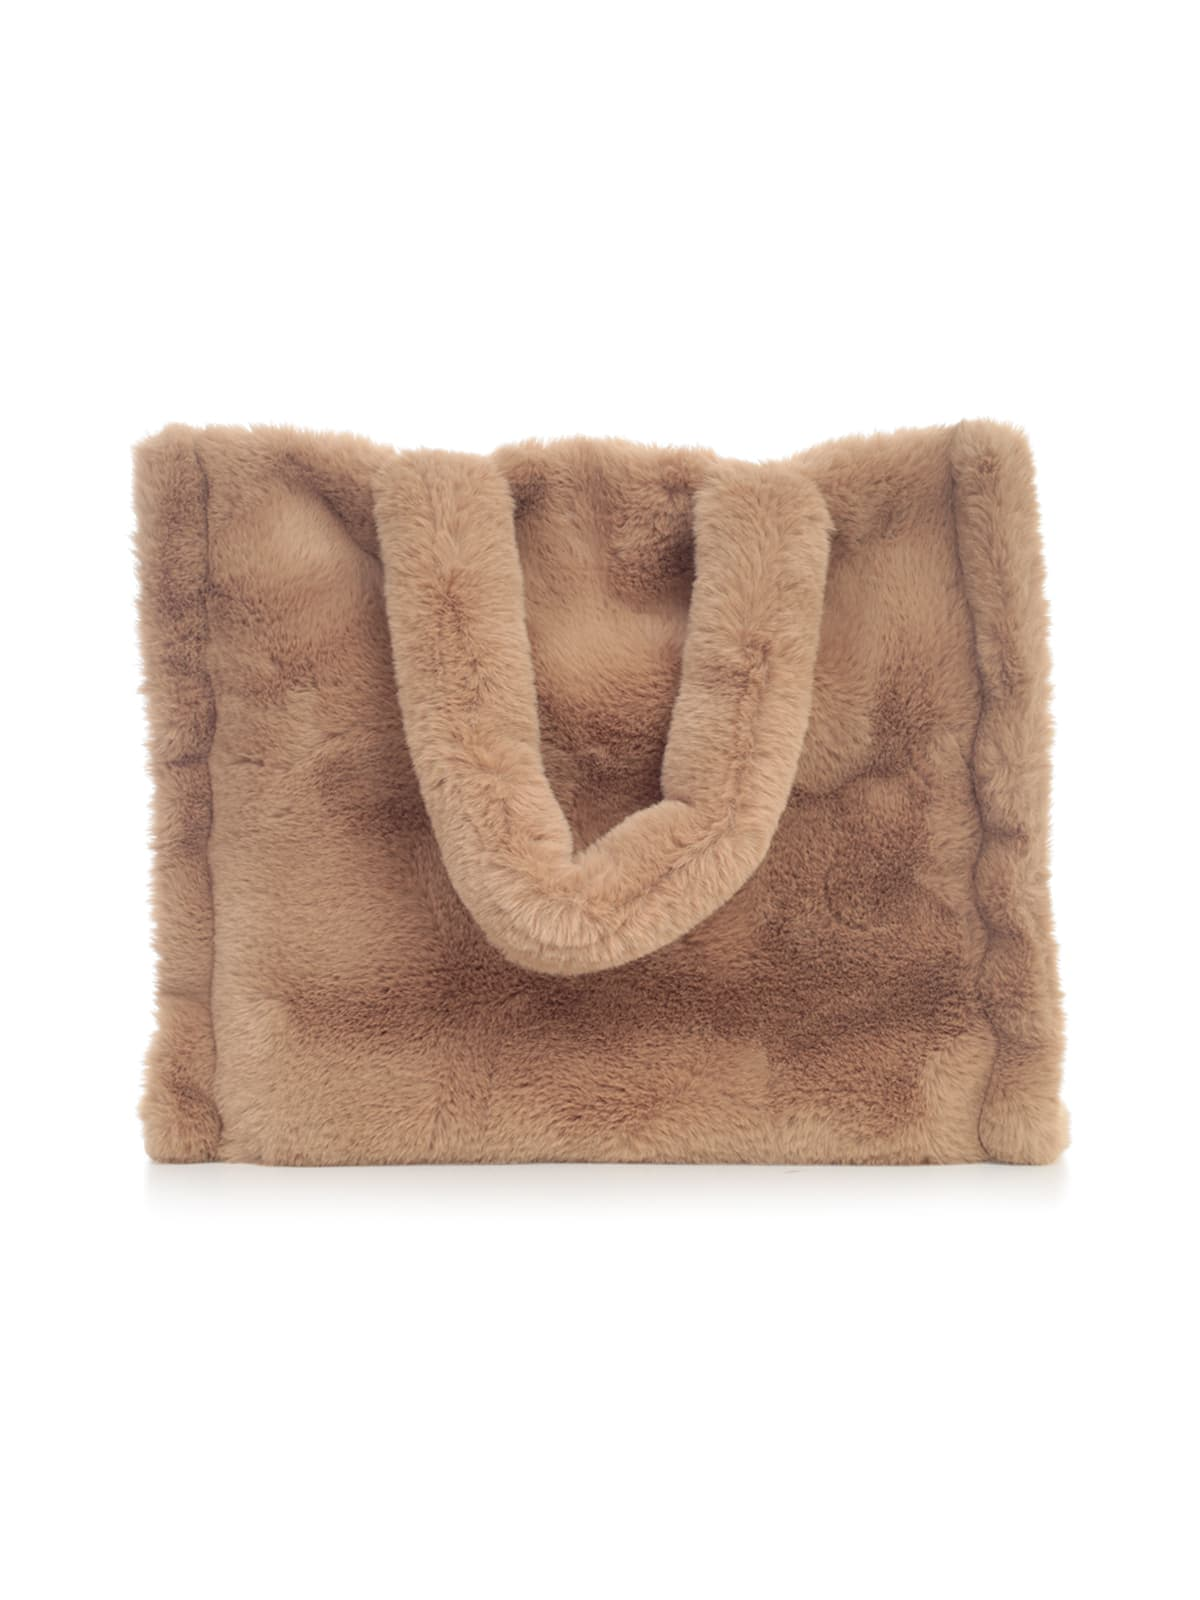 STAND STUDIO Lola Faux Fur Velvety Heavy Large Tote Bag